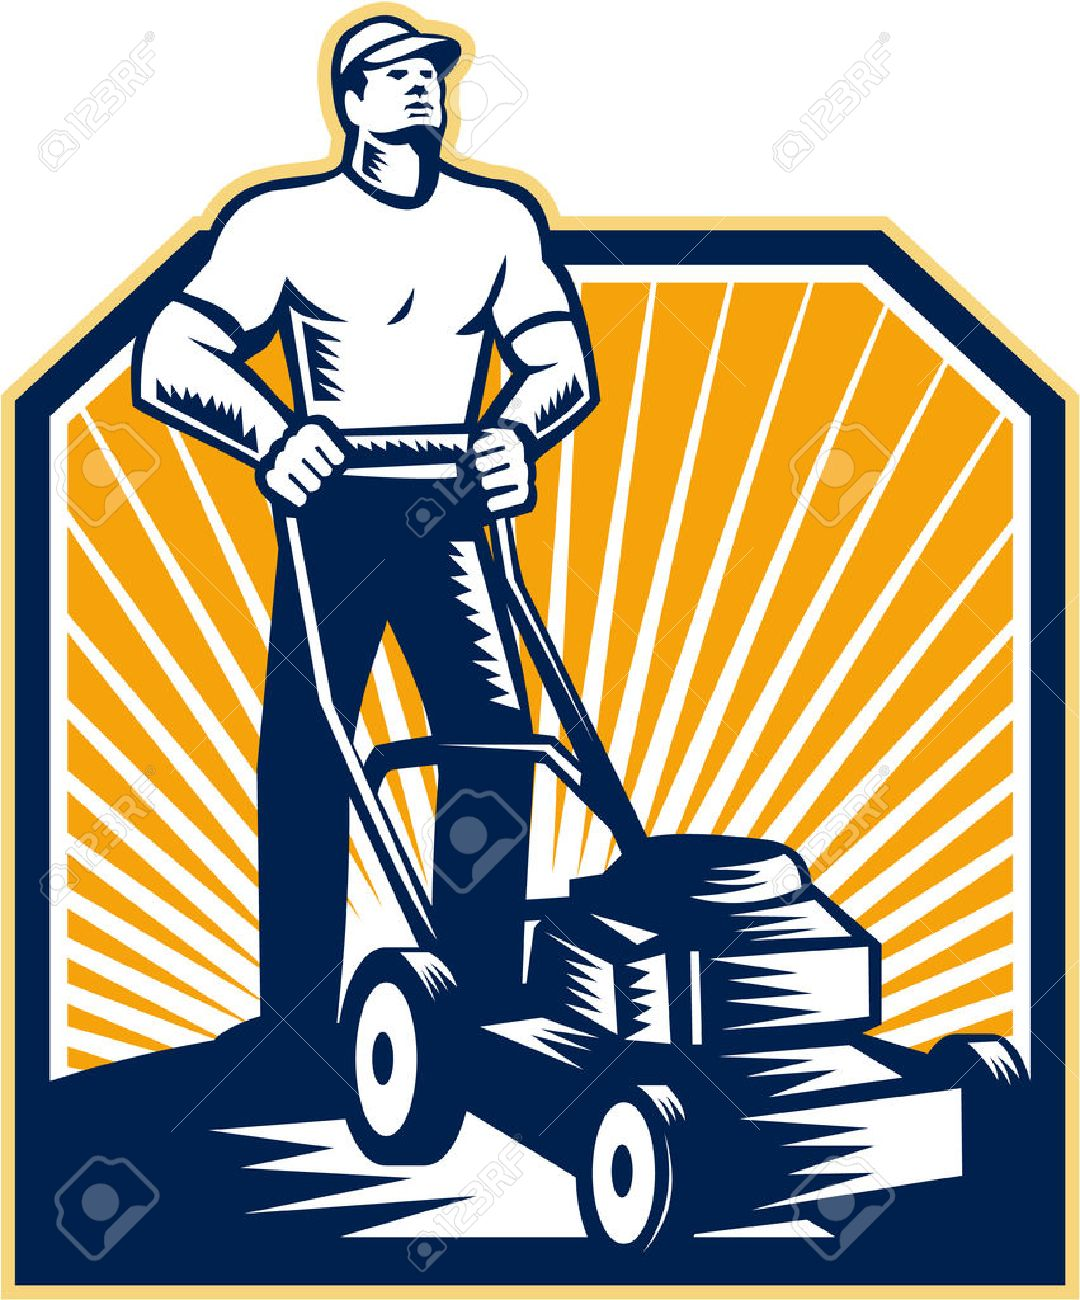 3 240 lawn mower cliparts stock vector and royalty free lawn mower rh 123rf com Lawn Service Clip Art free lawn mower clipart download